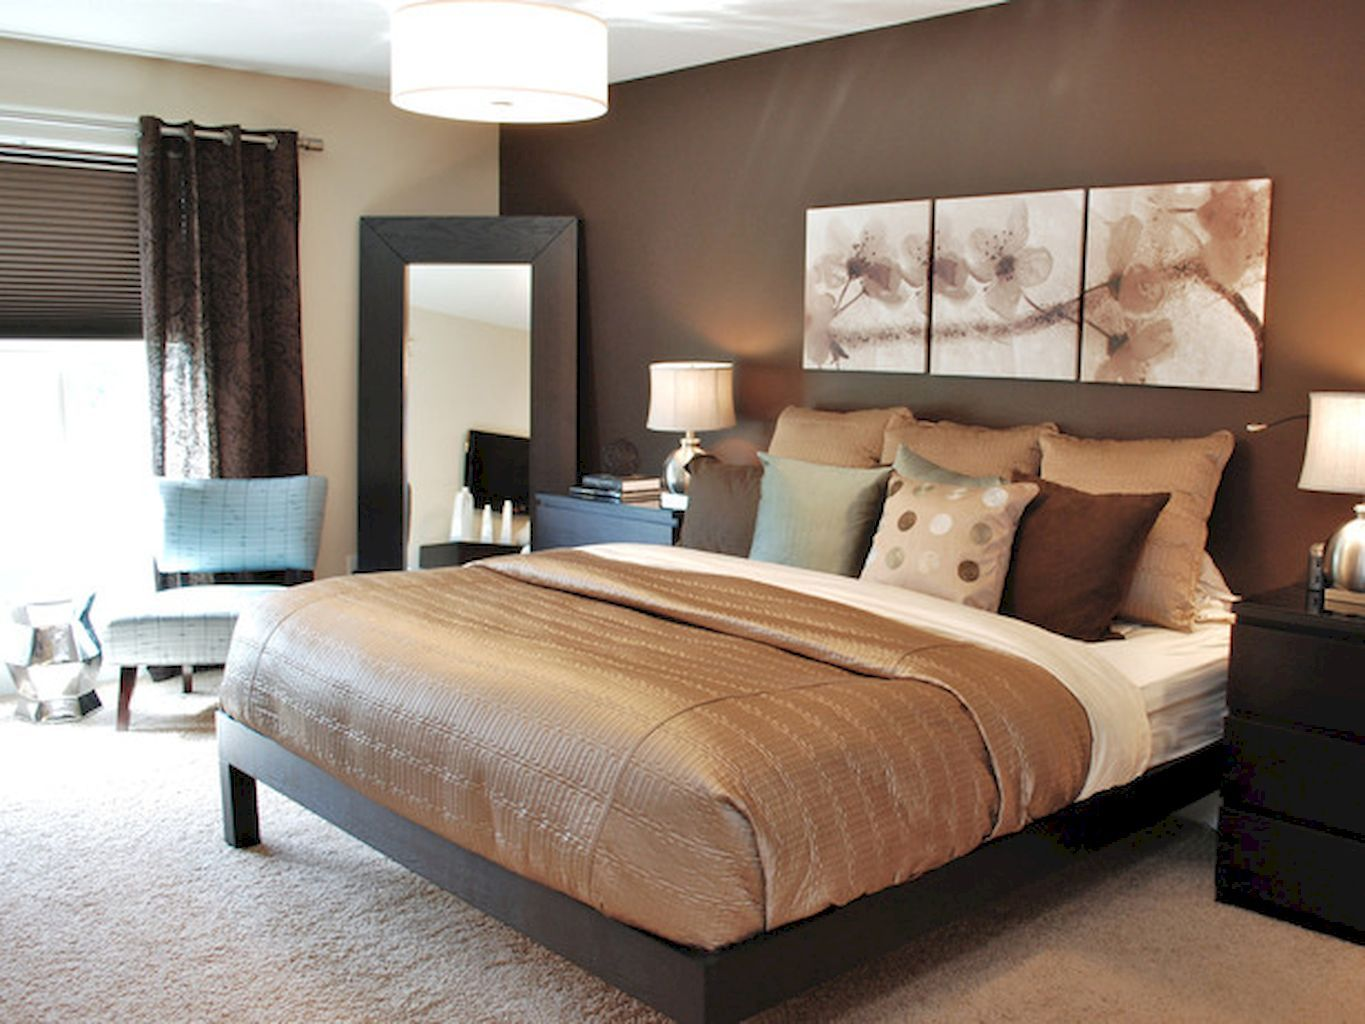 Traditional Bedroom Designs Endearing 60 Classy & Elegant Traditional Bedroom Designs That Will Fit Any Decorating Design